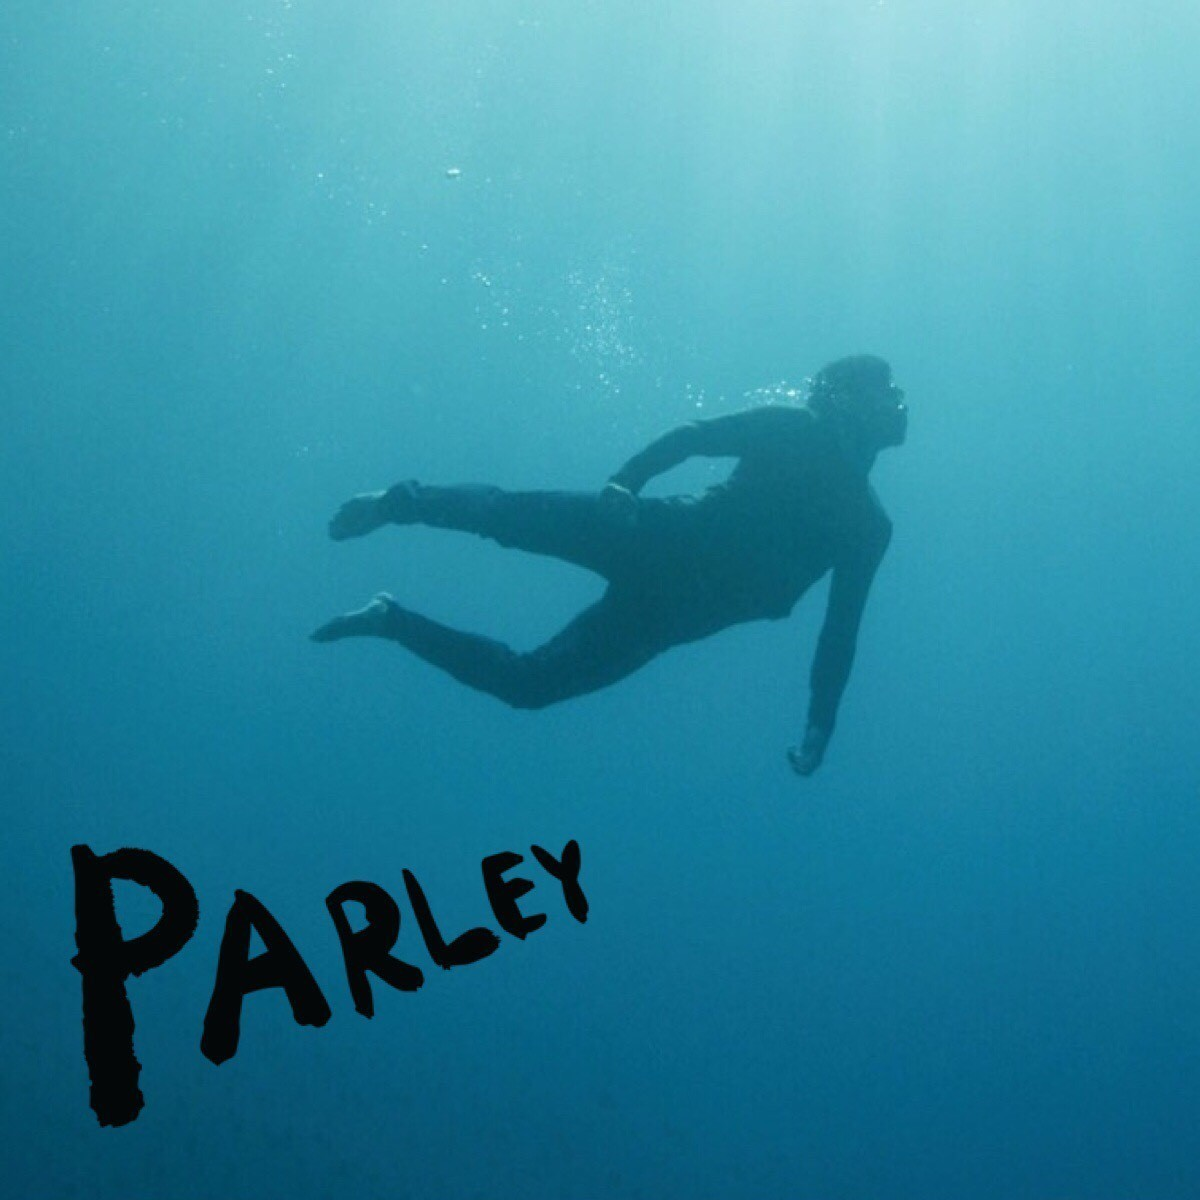 Articlehome presswebsite parley birthplace